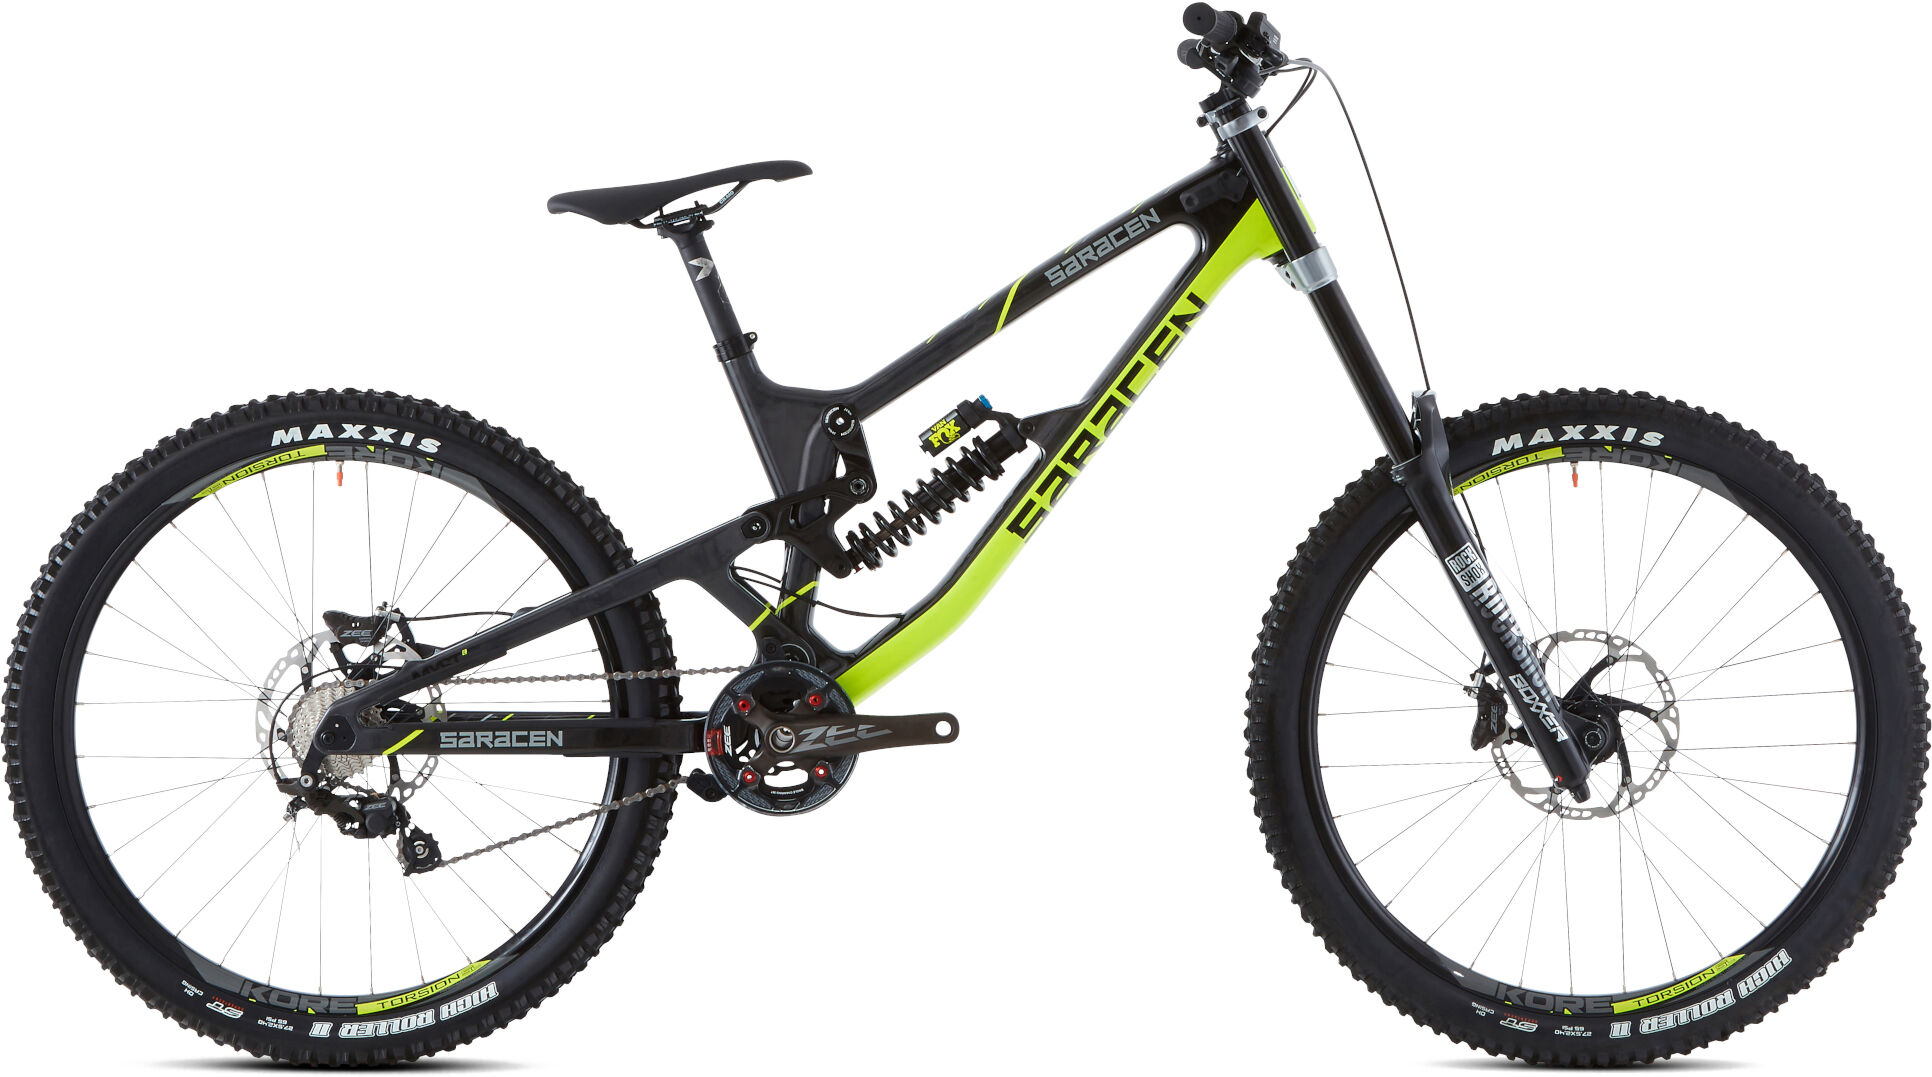 Saracen Myst Pro Factory - 2019 Mountain Bike | MTB